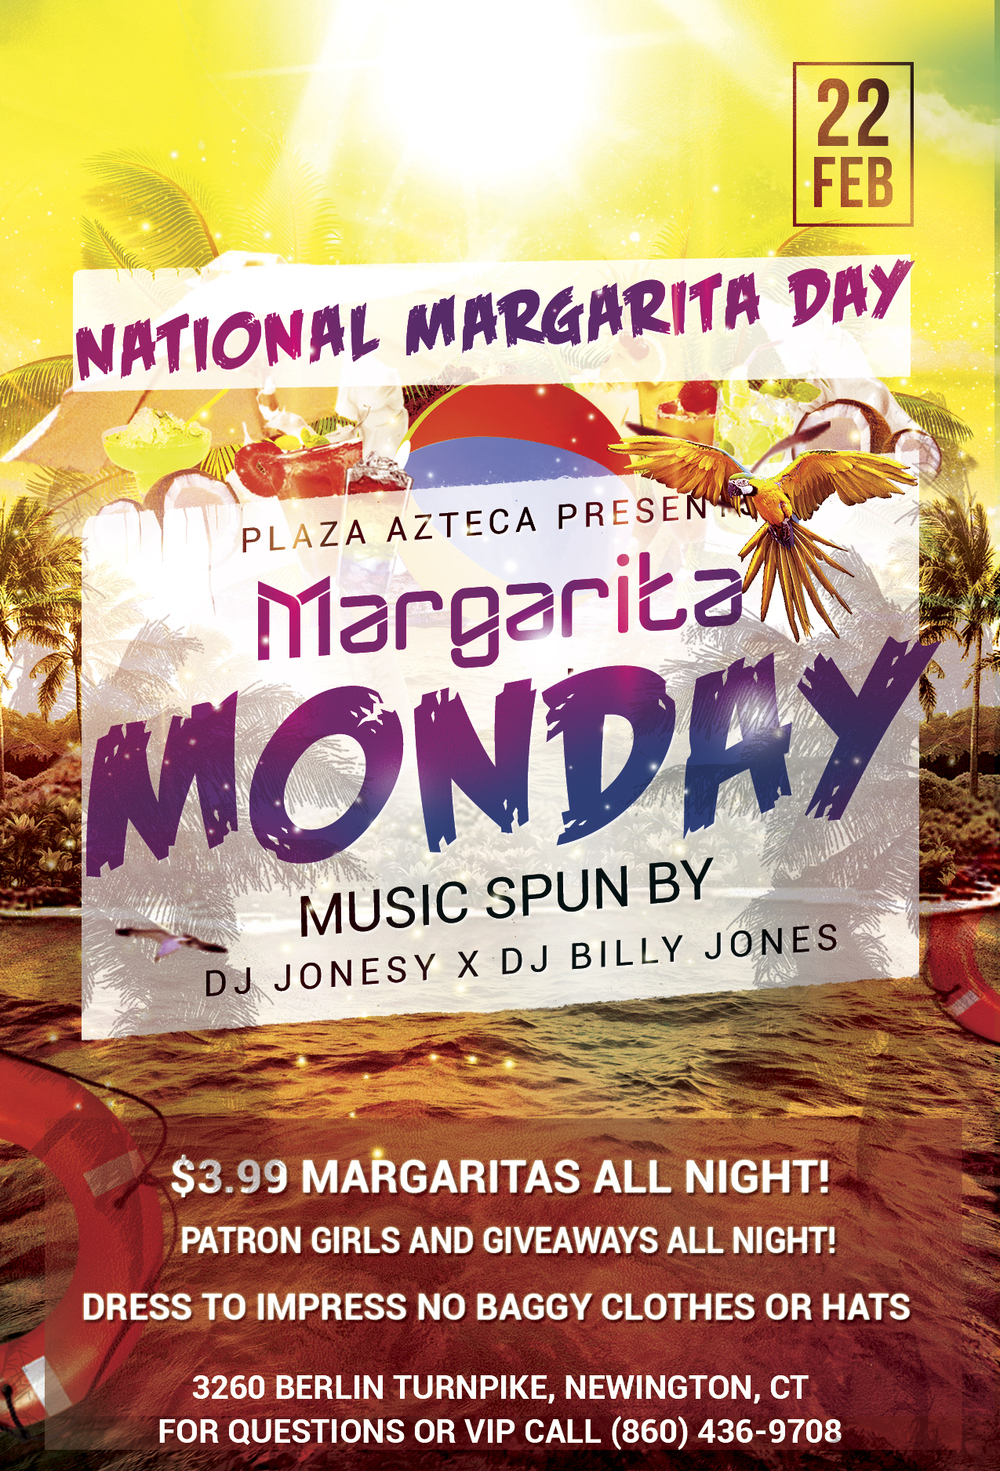 Monday, Feb 22nd join us at Plaza Azteca in Newington, CT for Margarita Monday with music by JONESY &  Billy Jones .  Music starts at 9 pm.  $4 Margaritas all night long!